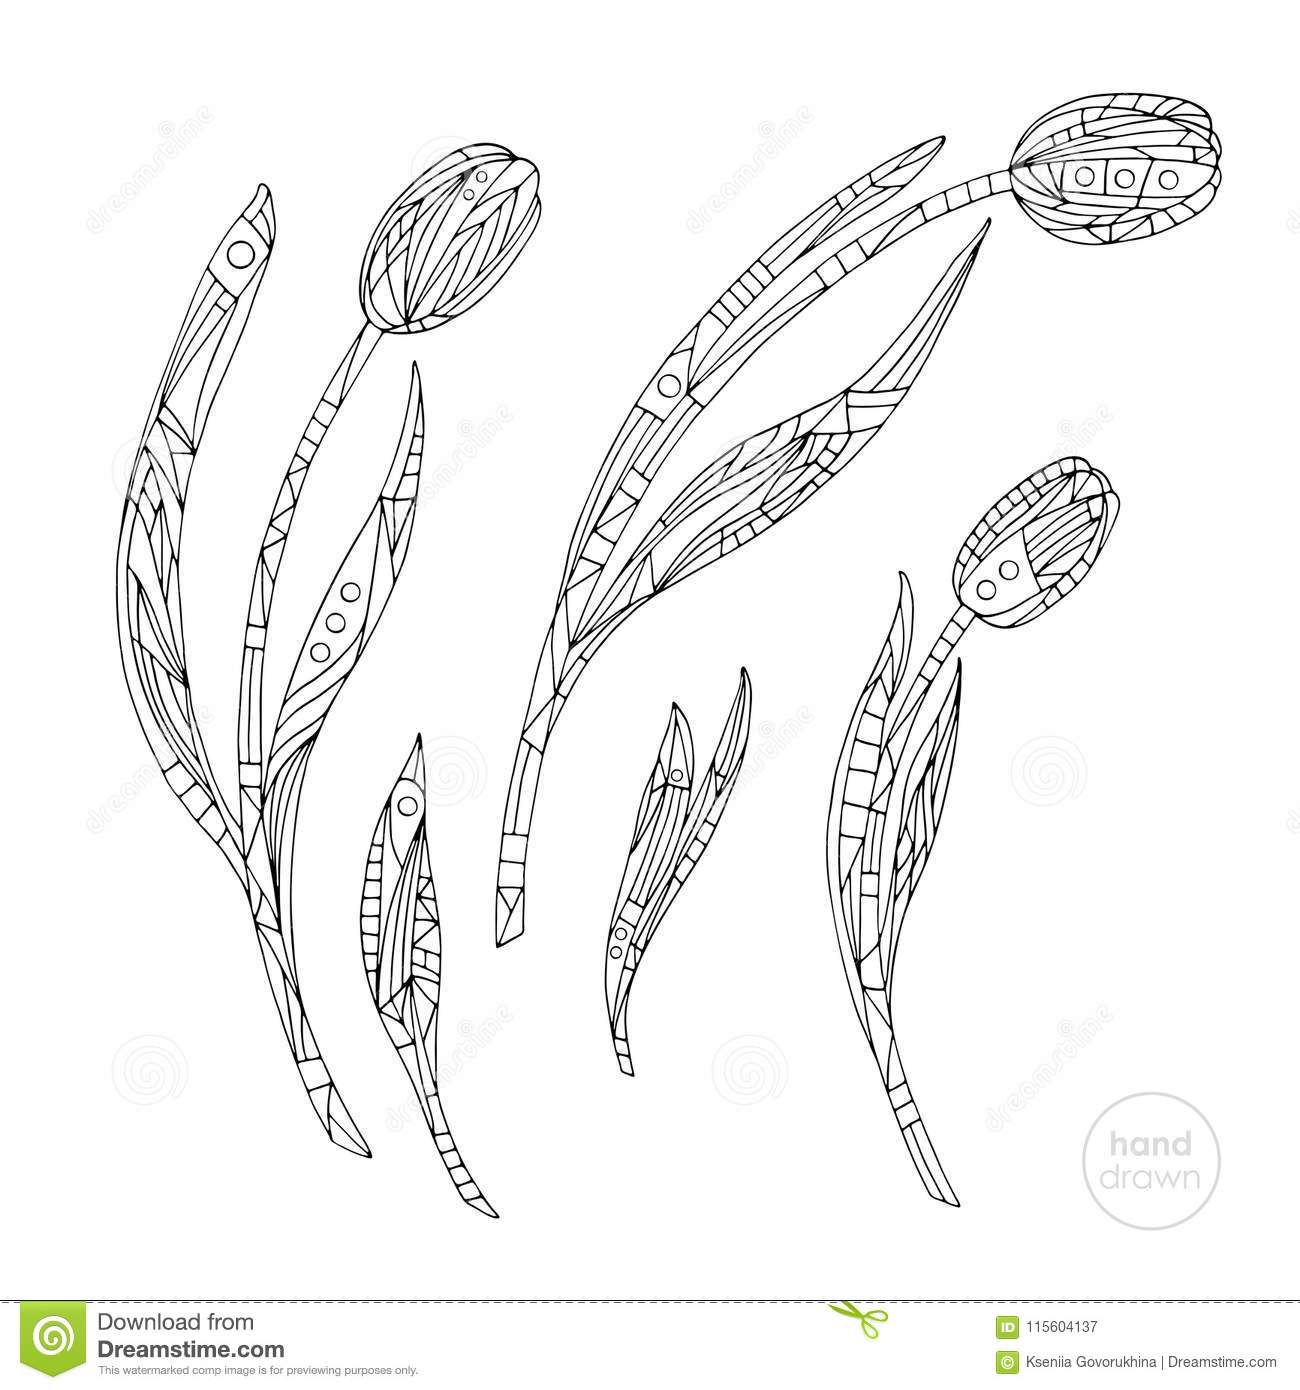 Tulips Coloring Page. Hand Drawn Abstract Flowers Vector ...